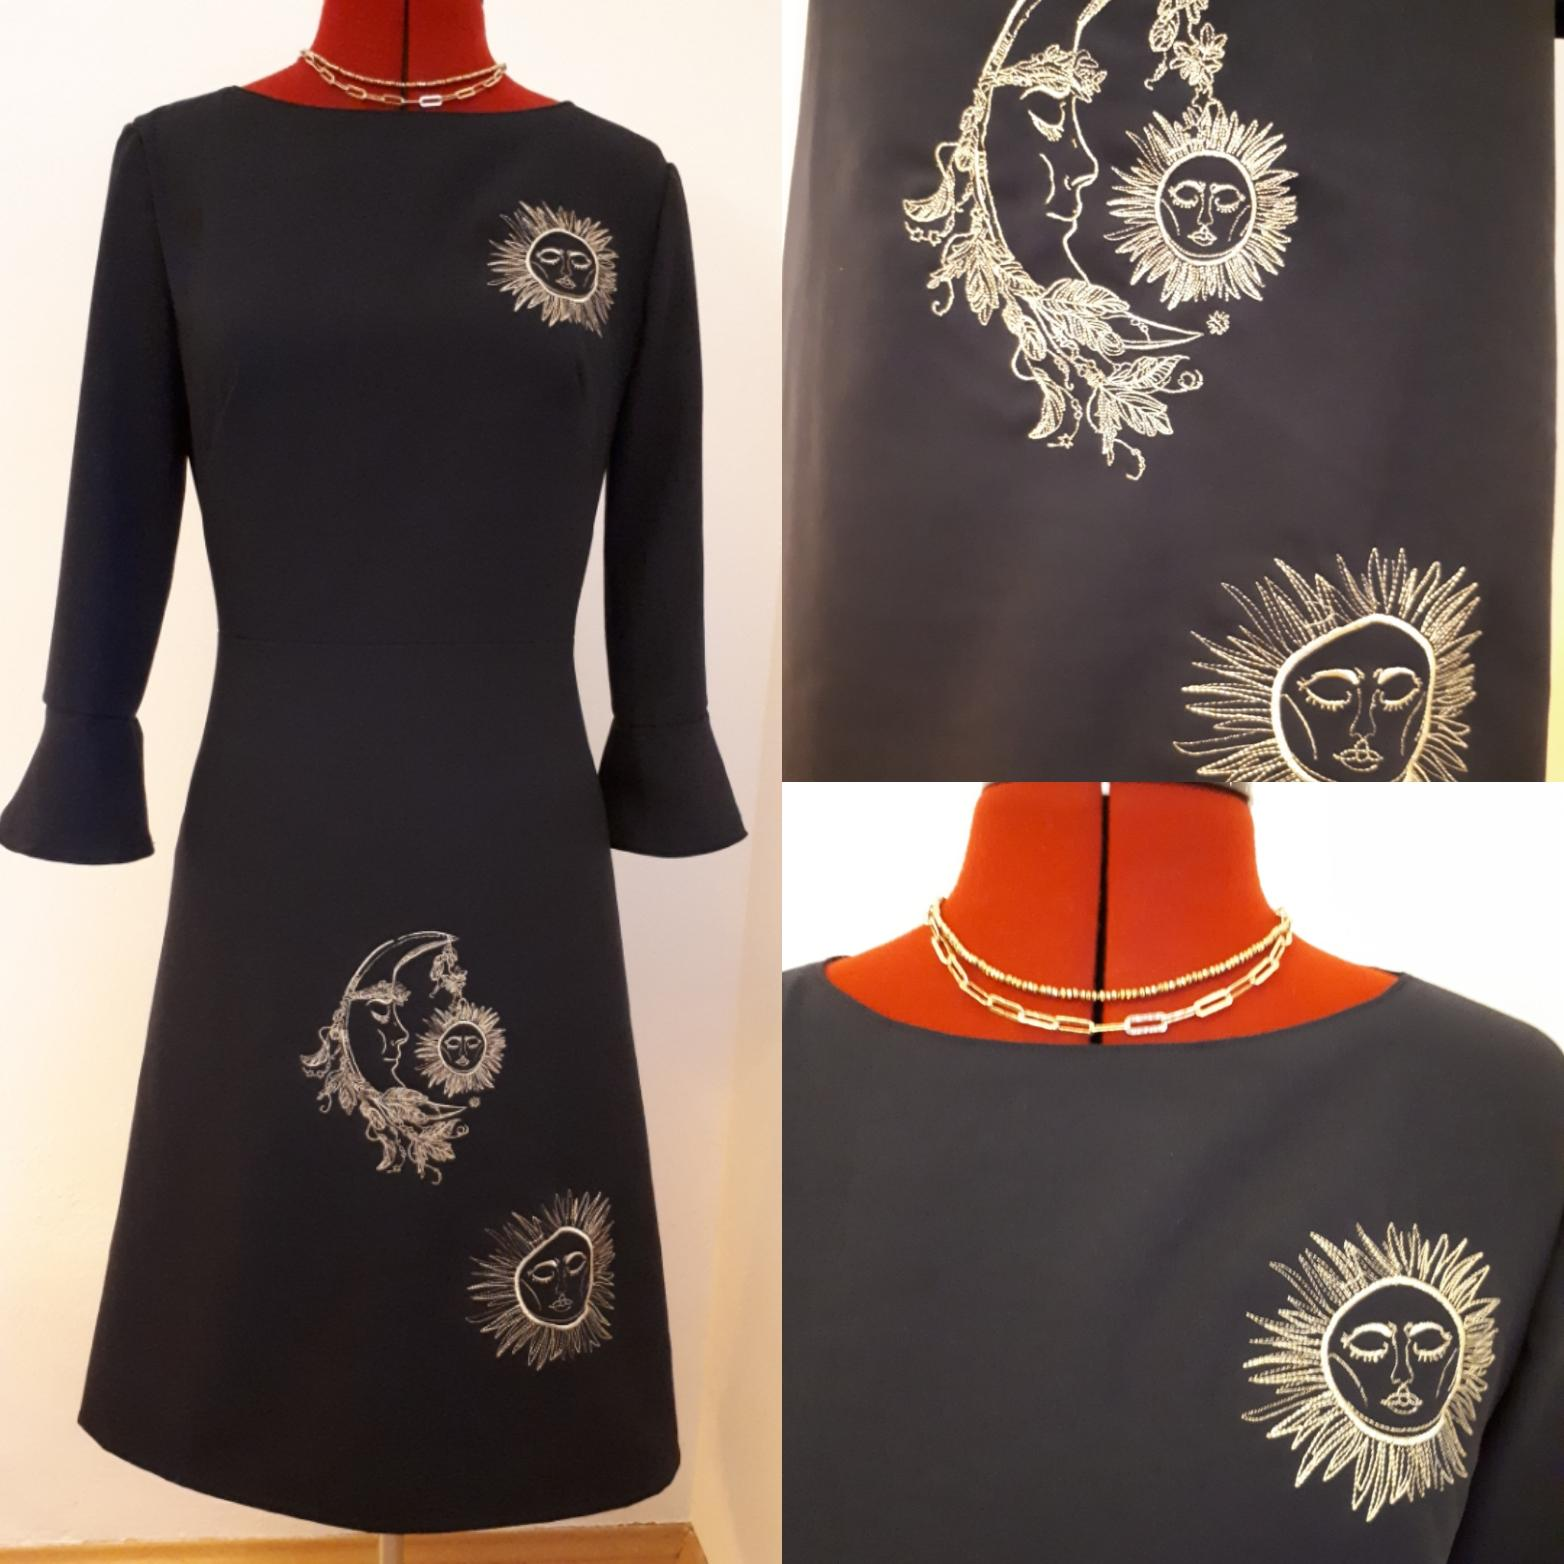 Embroidered dress with Sun and moon design